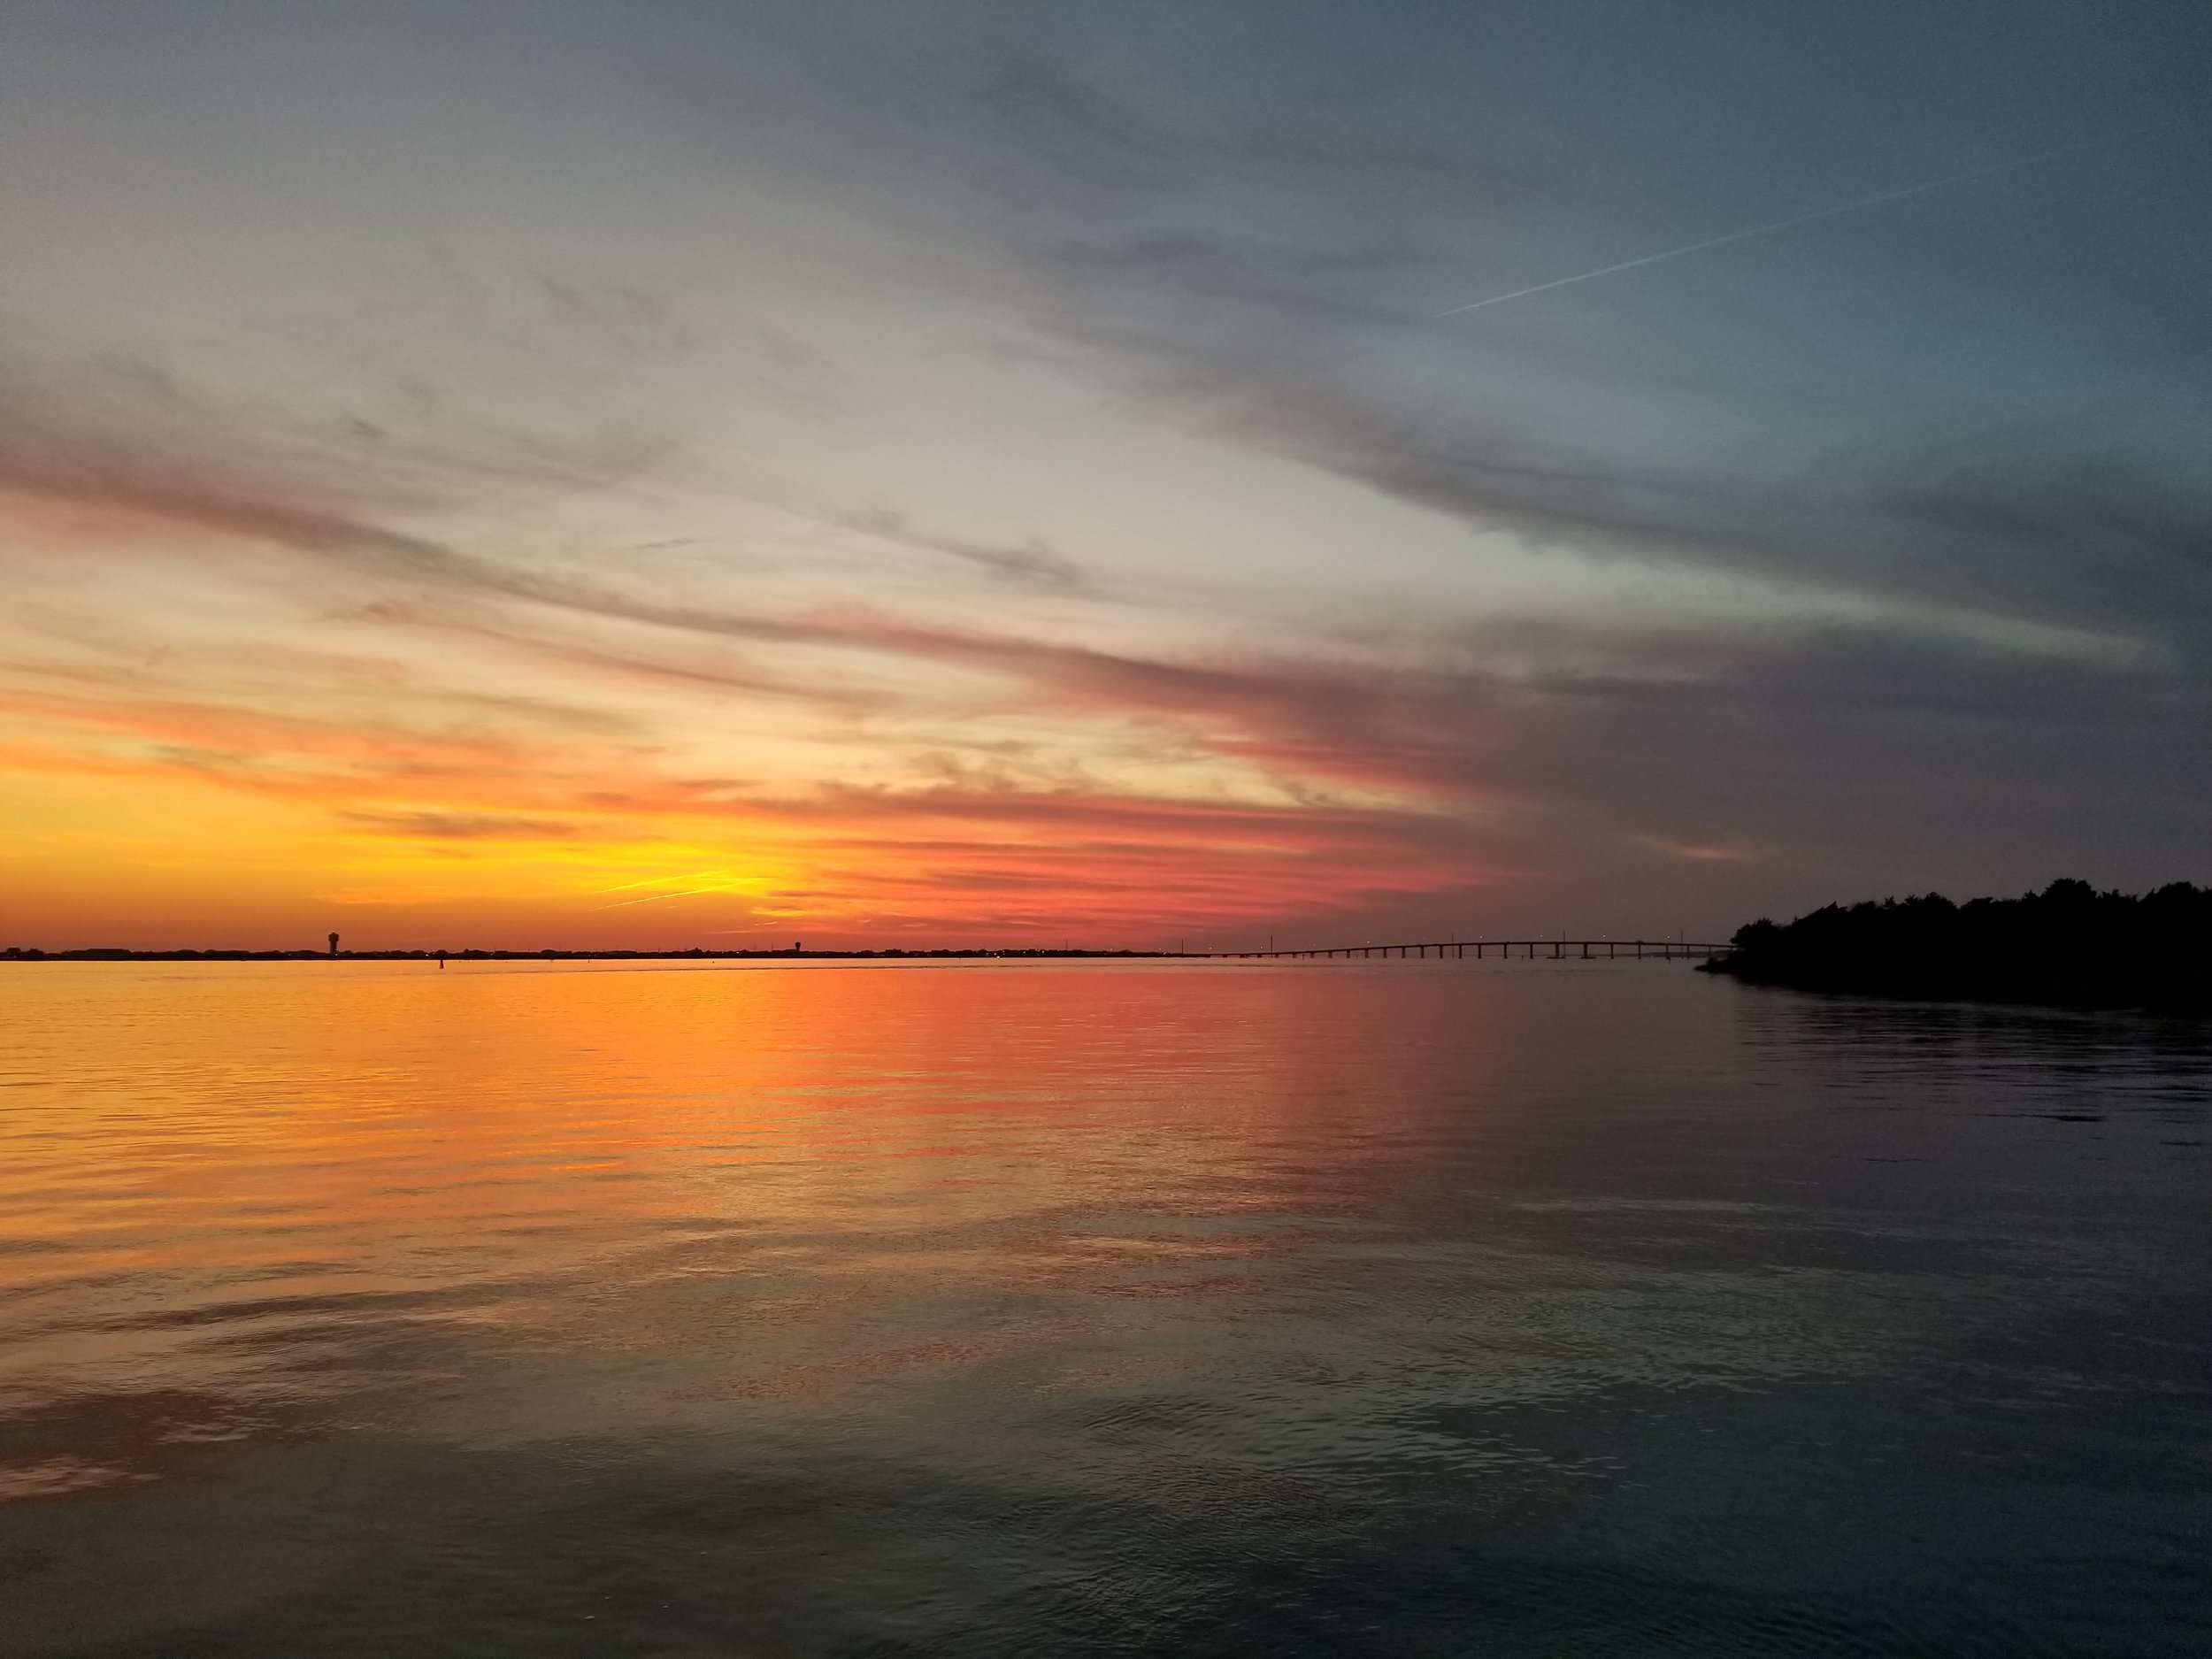 Sunset at anchor in Morehead City.